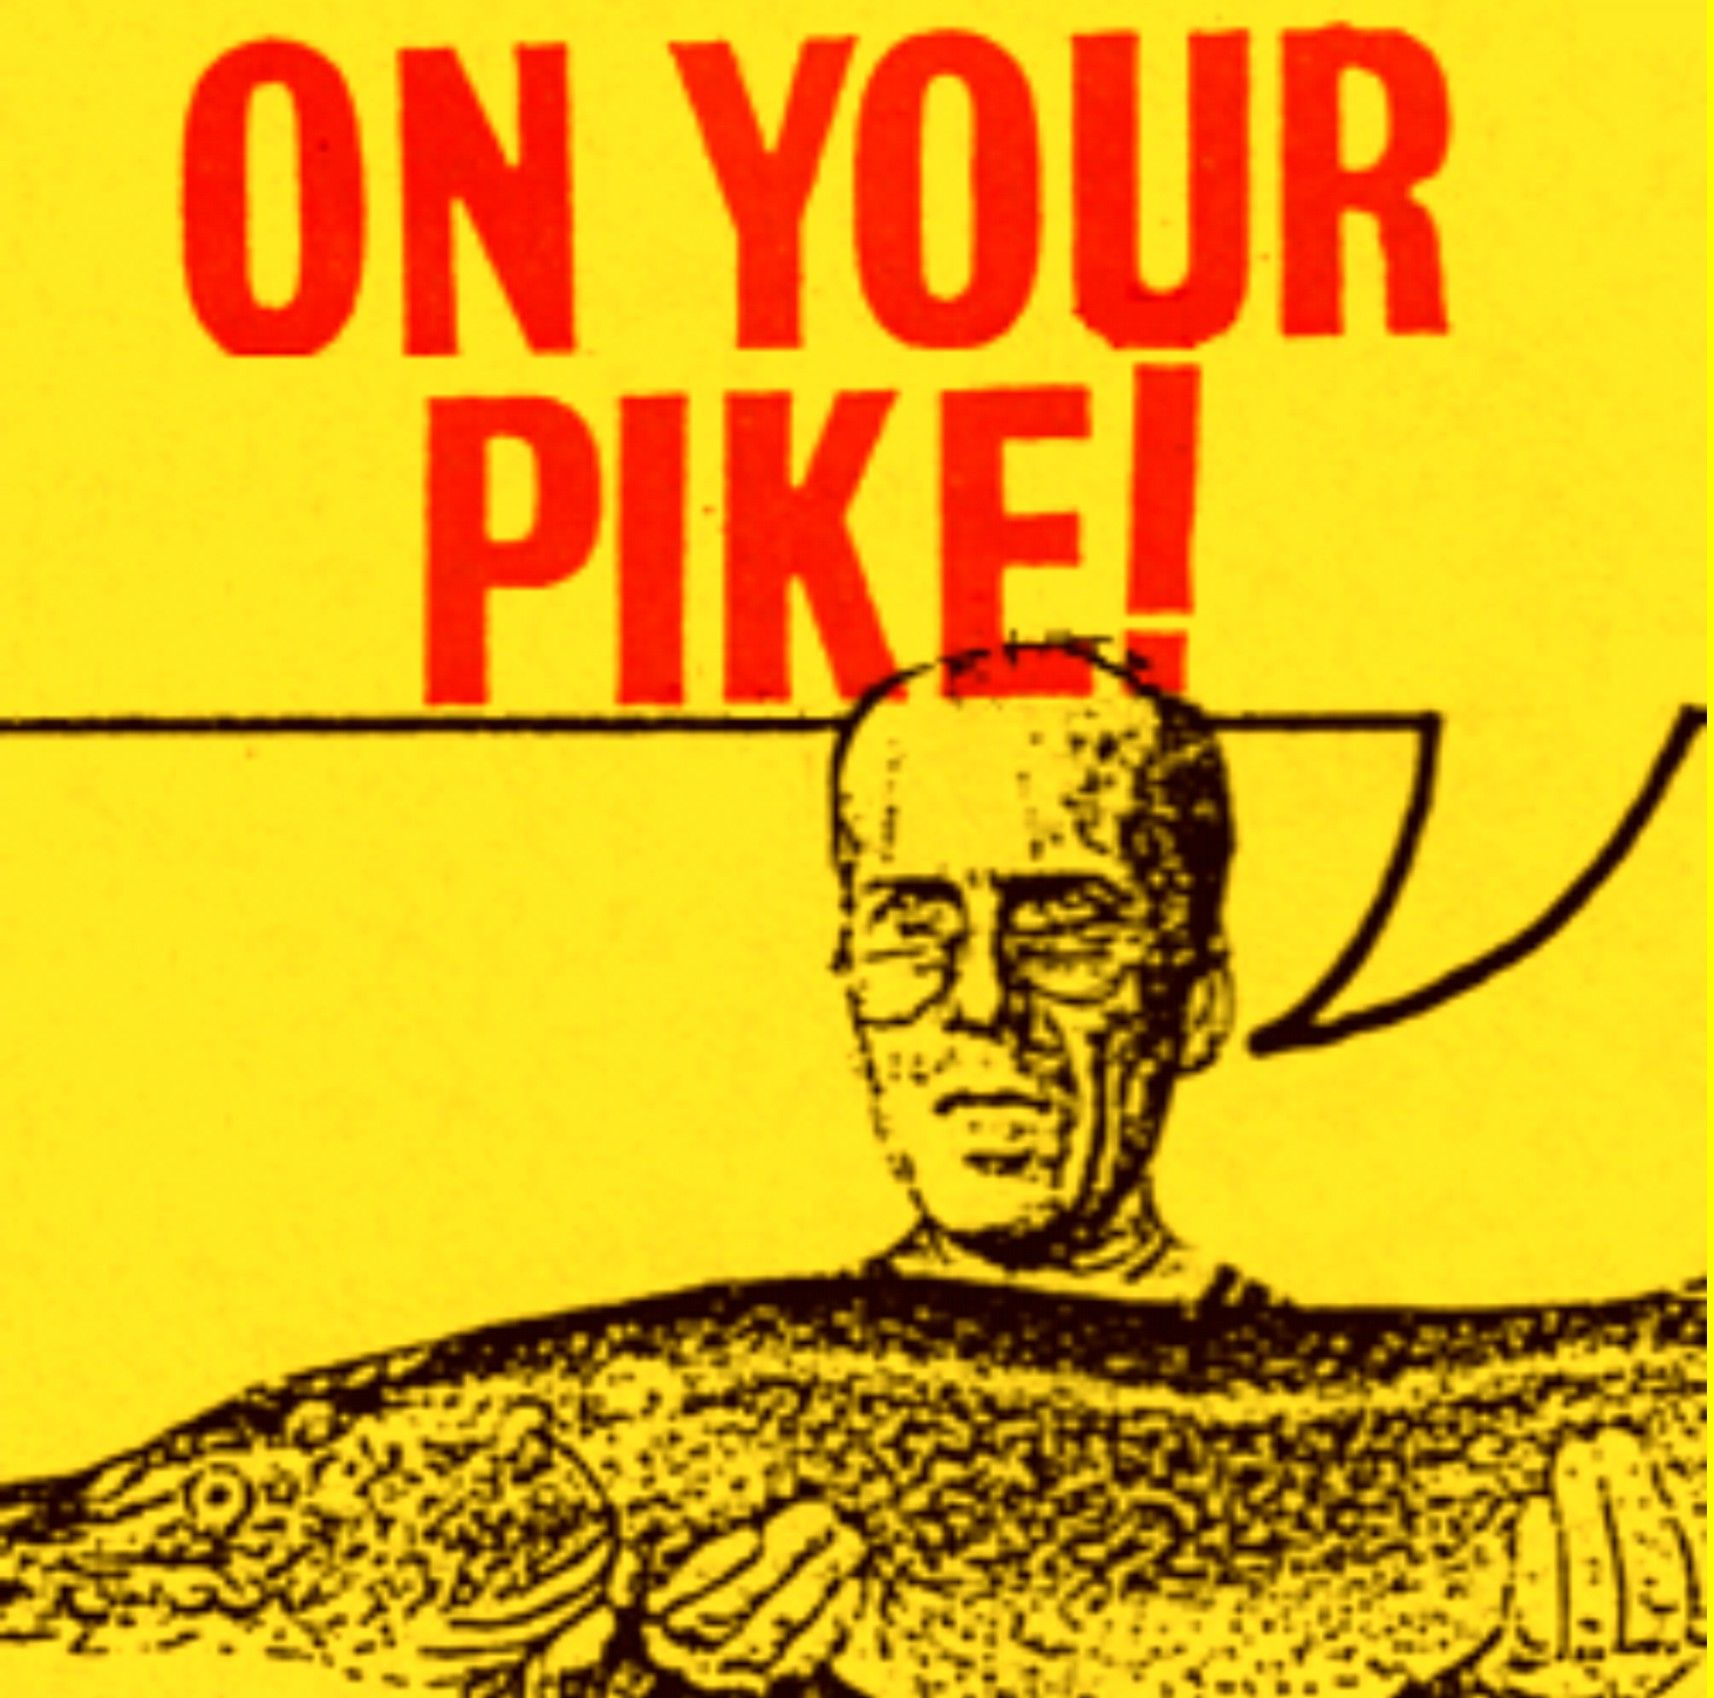 On Your Pike